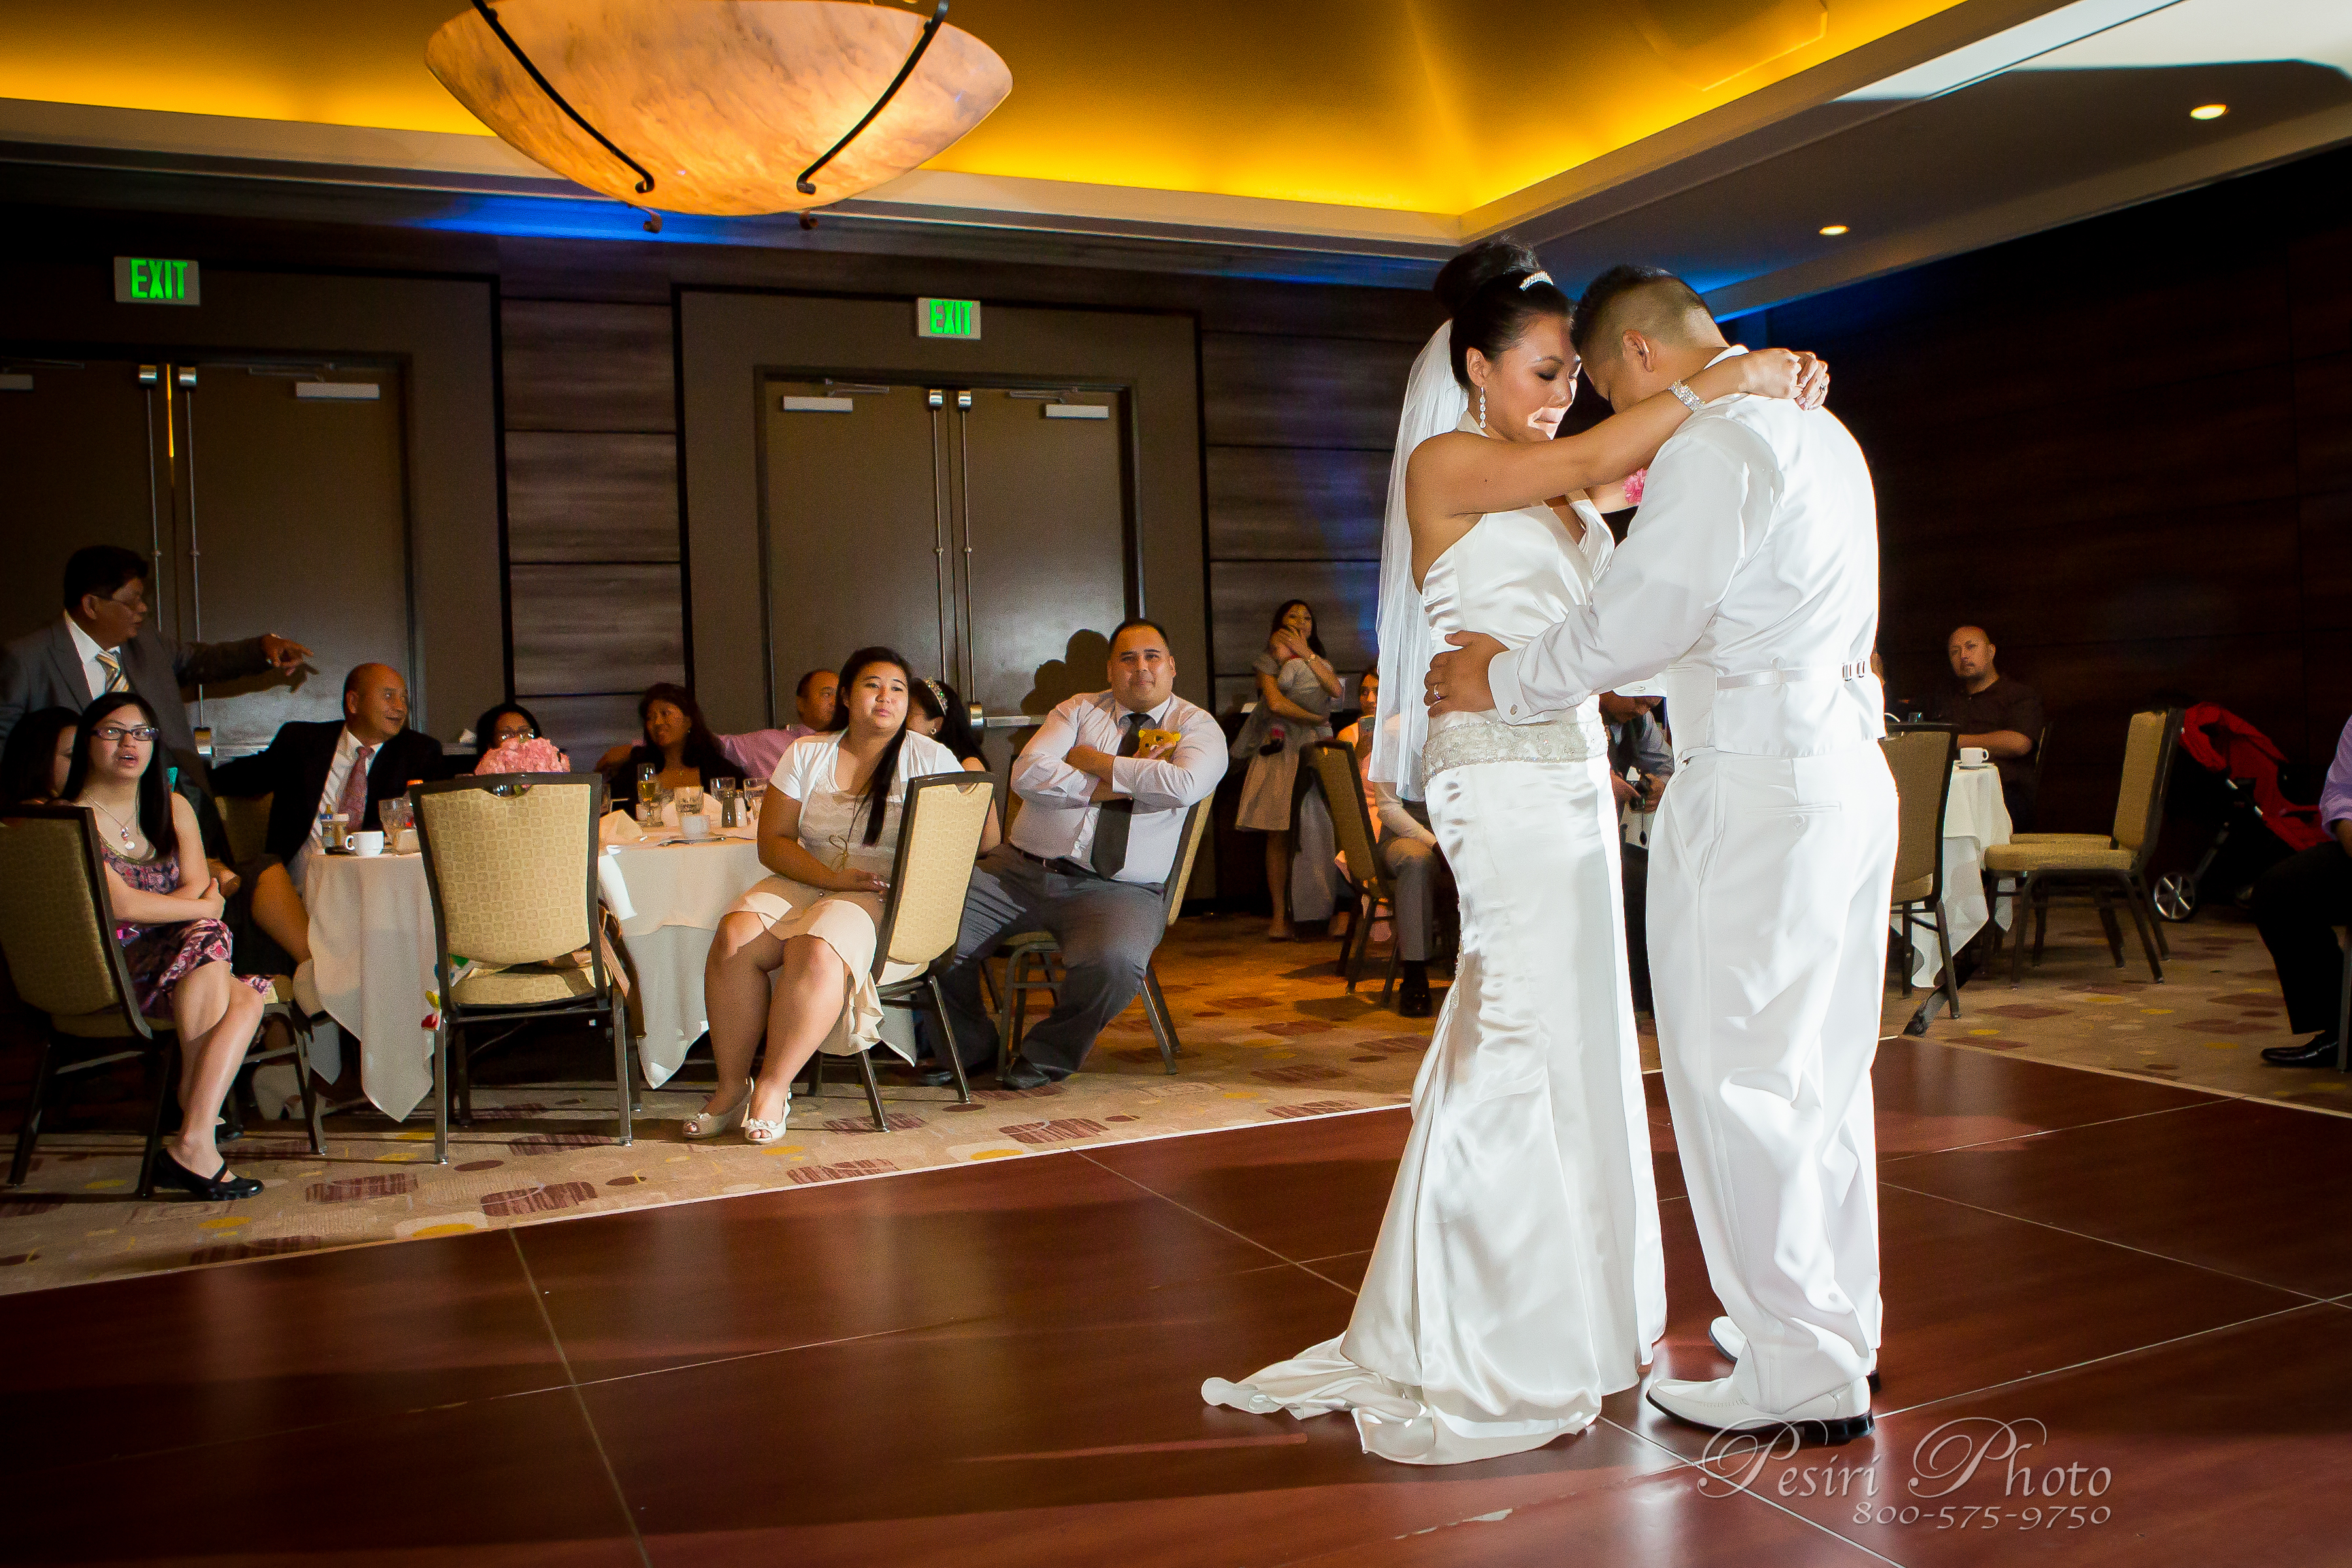 DoubleTree Monrovia wedding By Pesir